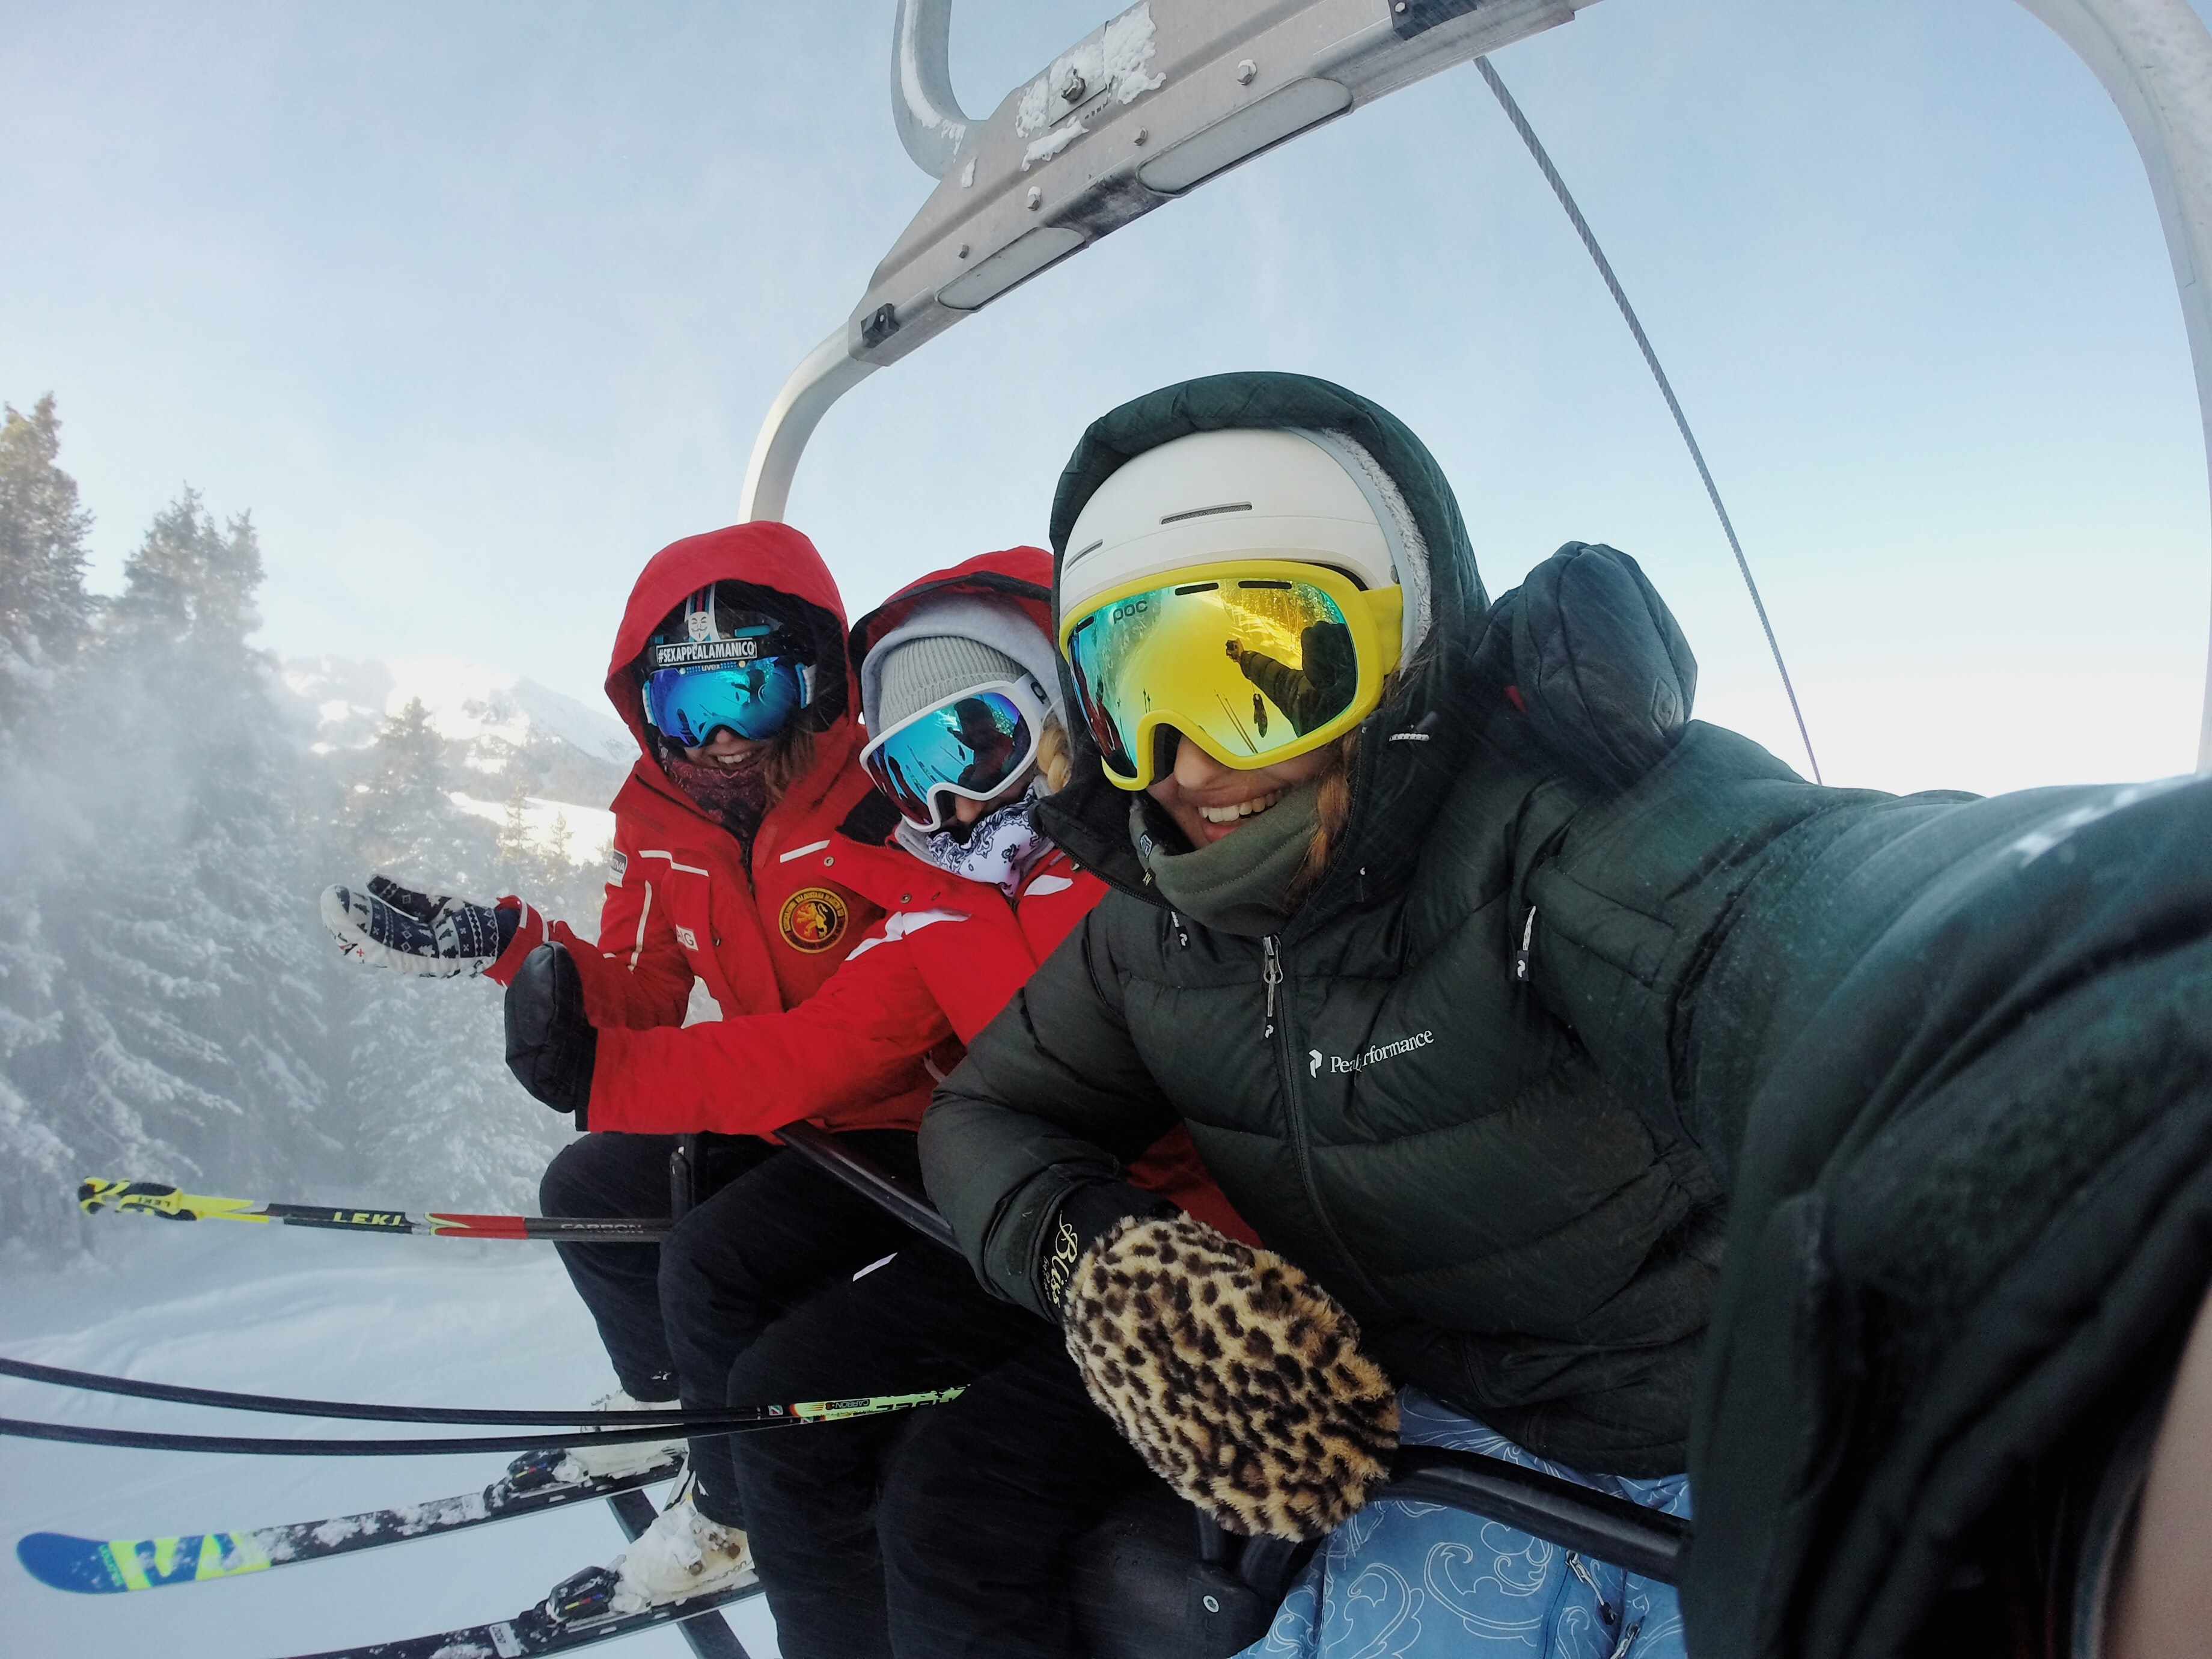 three person wearing ski gear riding cable car